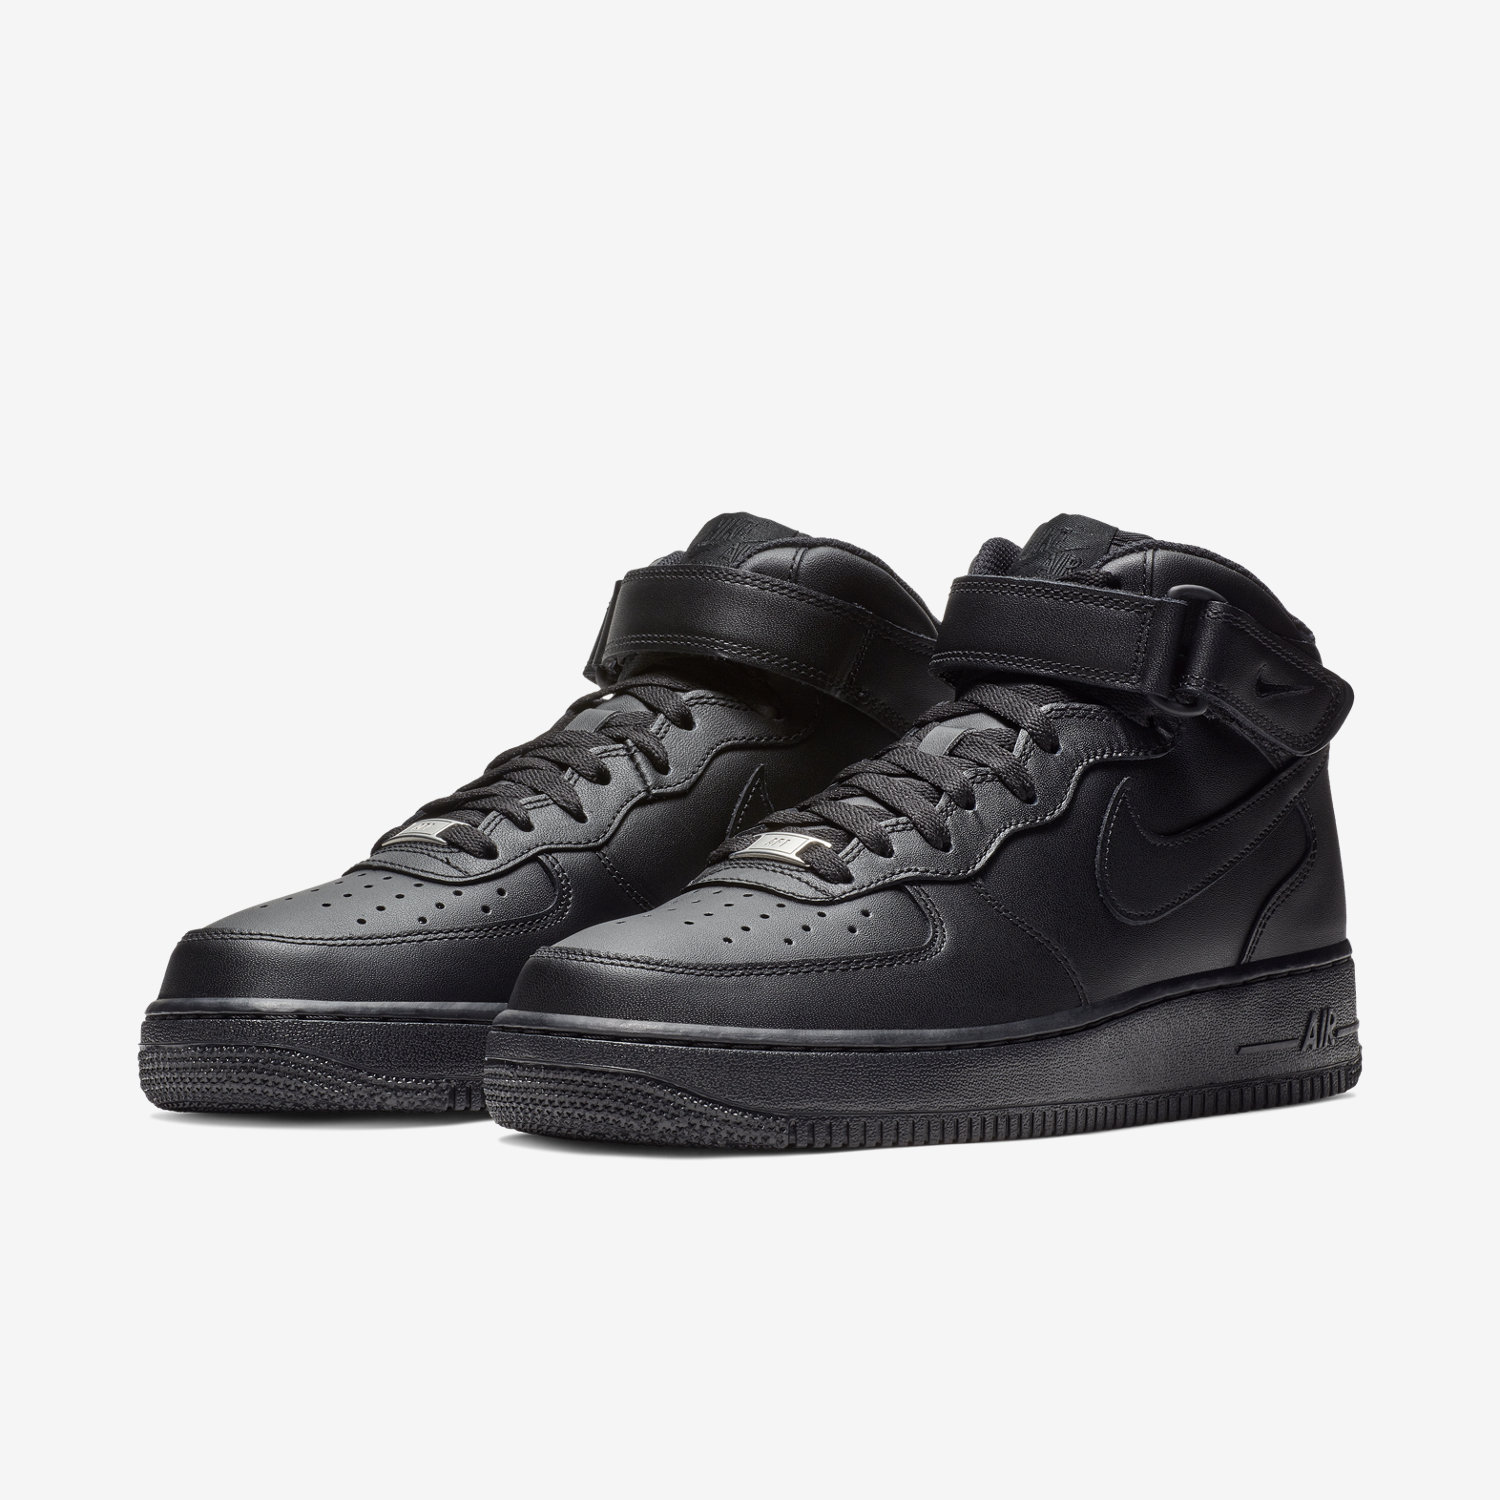 Nike Air Force One Schwarz Gold